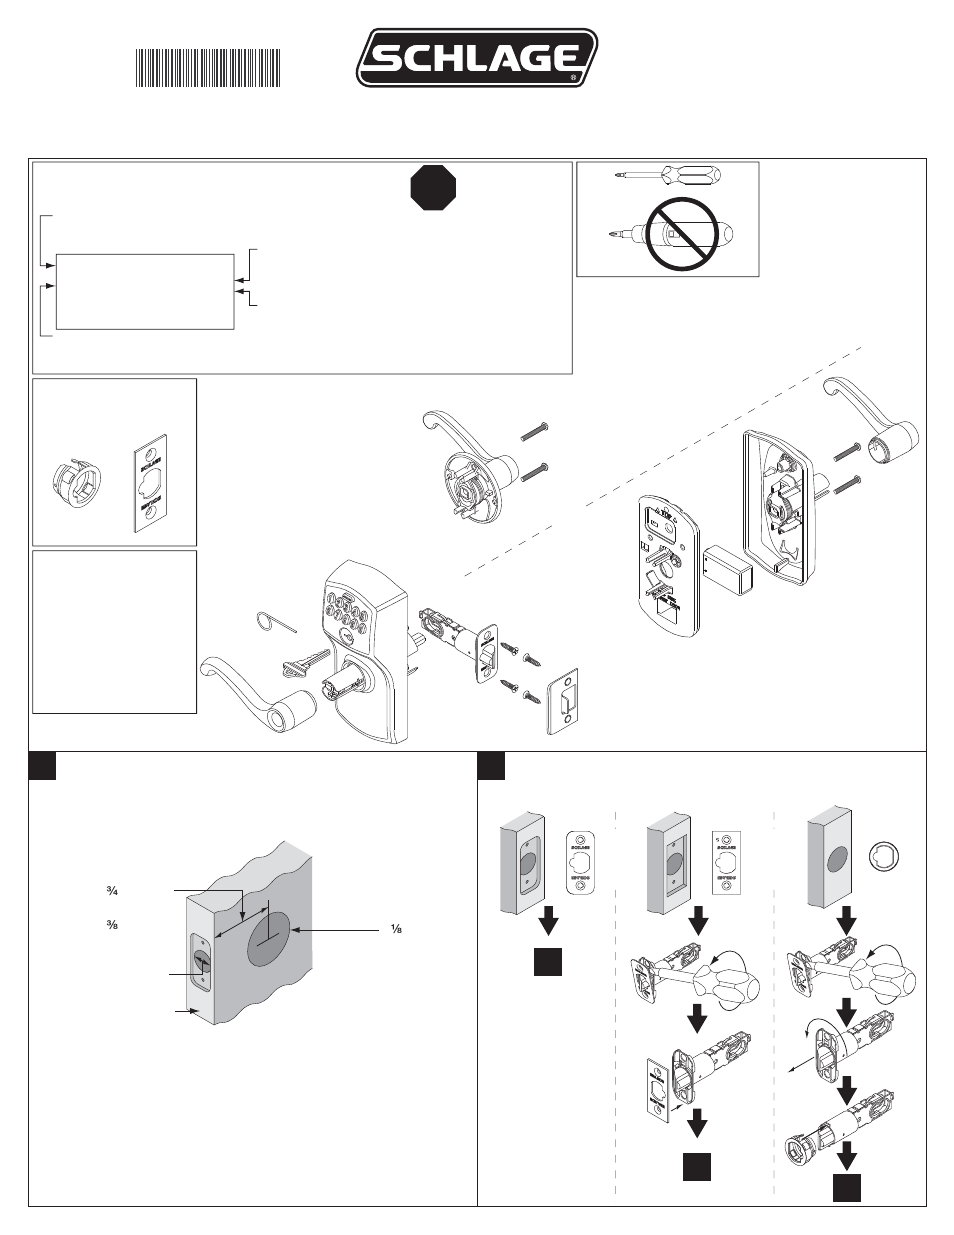 Factory Direct Hardware Schlage Fe575 Cam Acc User Manual